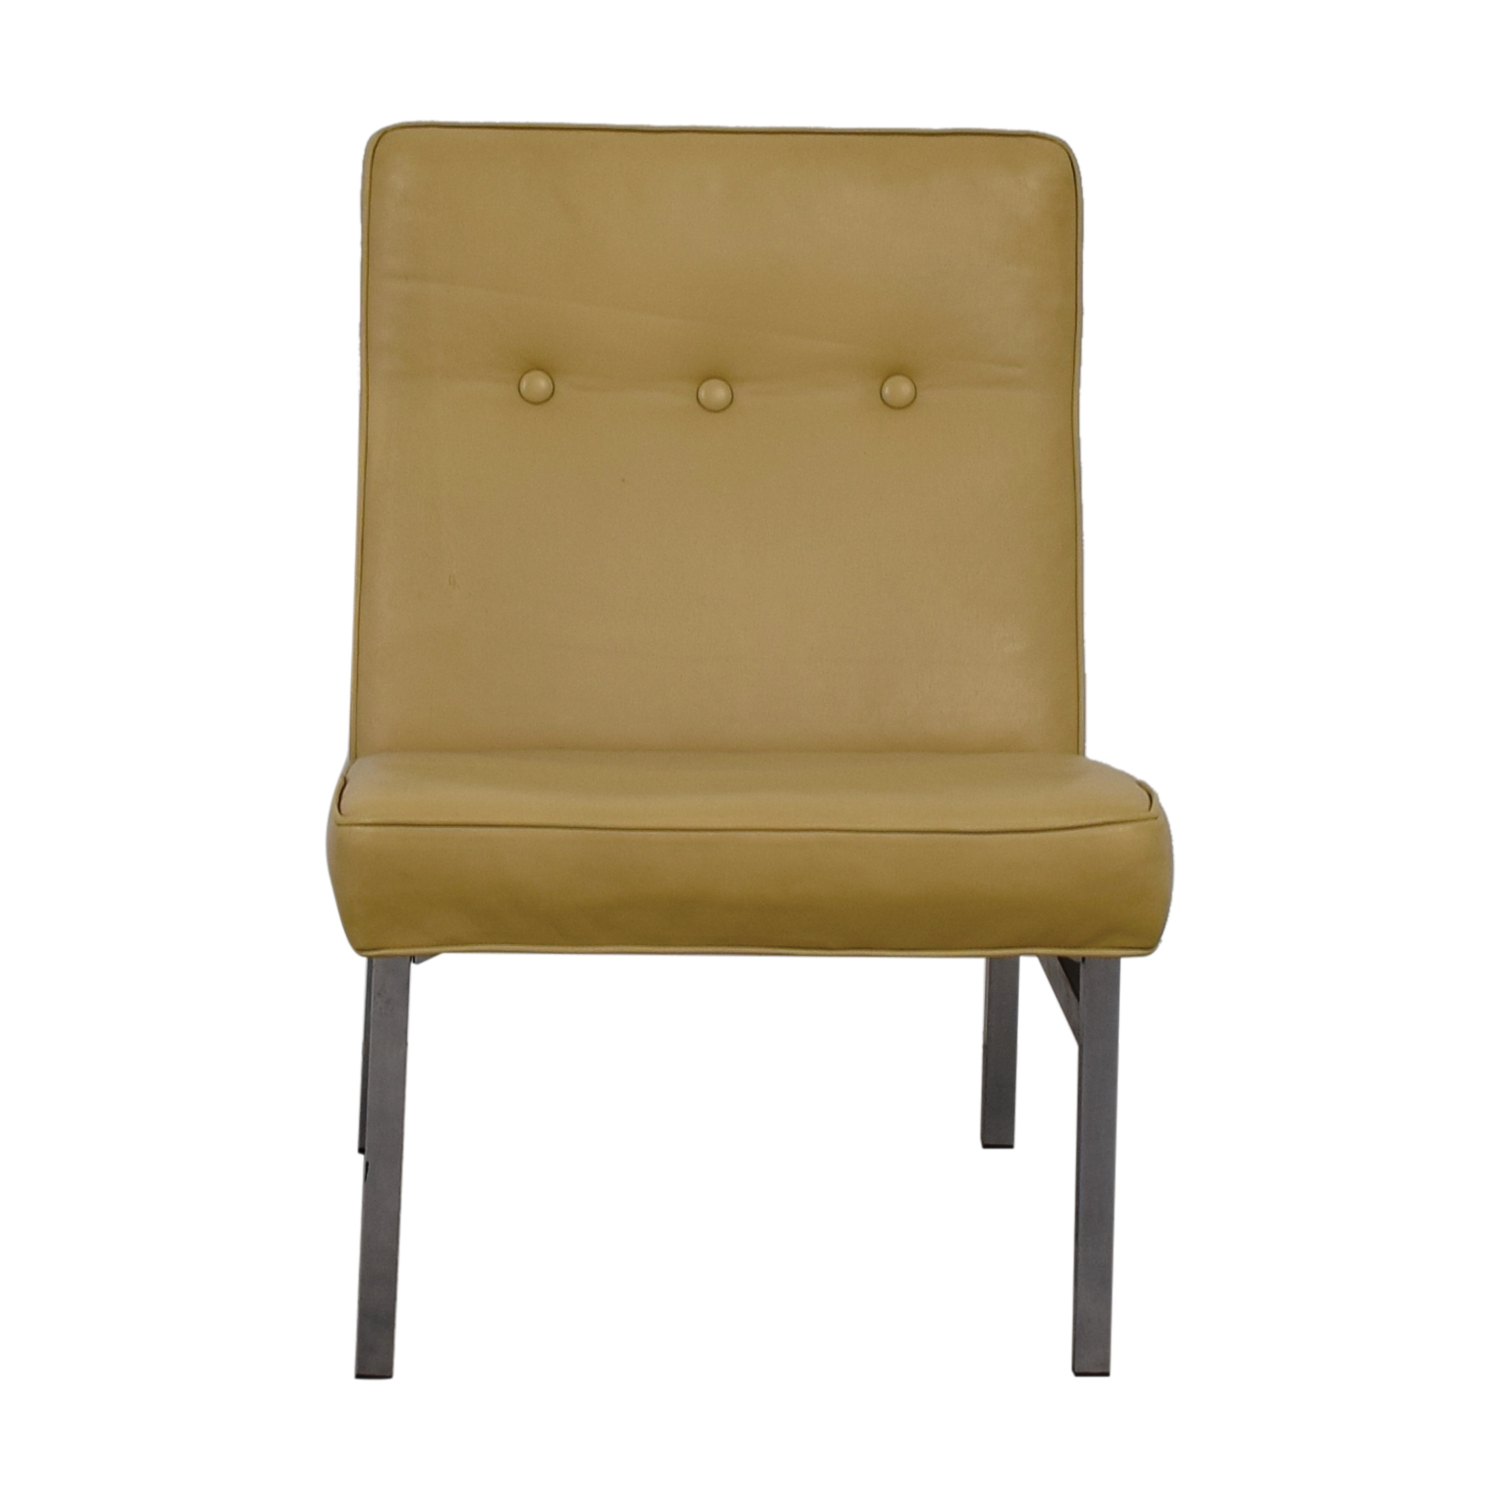 Accent Chairs Prices 69 Off Ikea Ikea Mellby Dogtooth Accent Chair Chairs